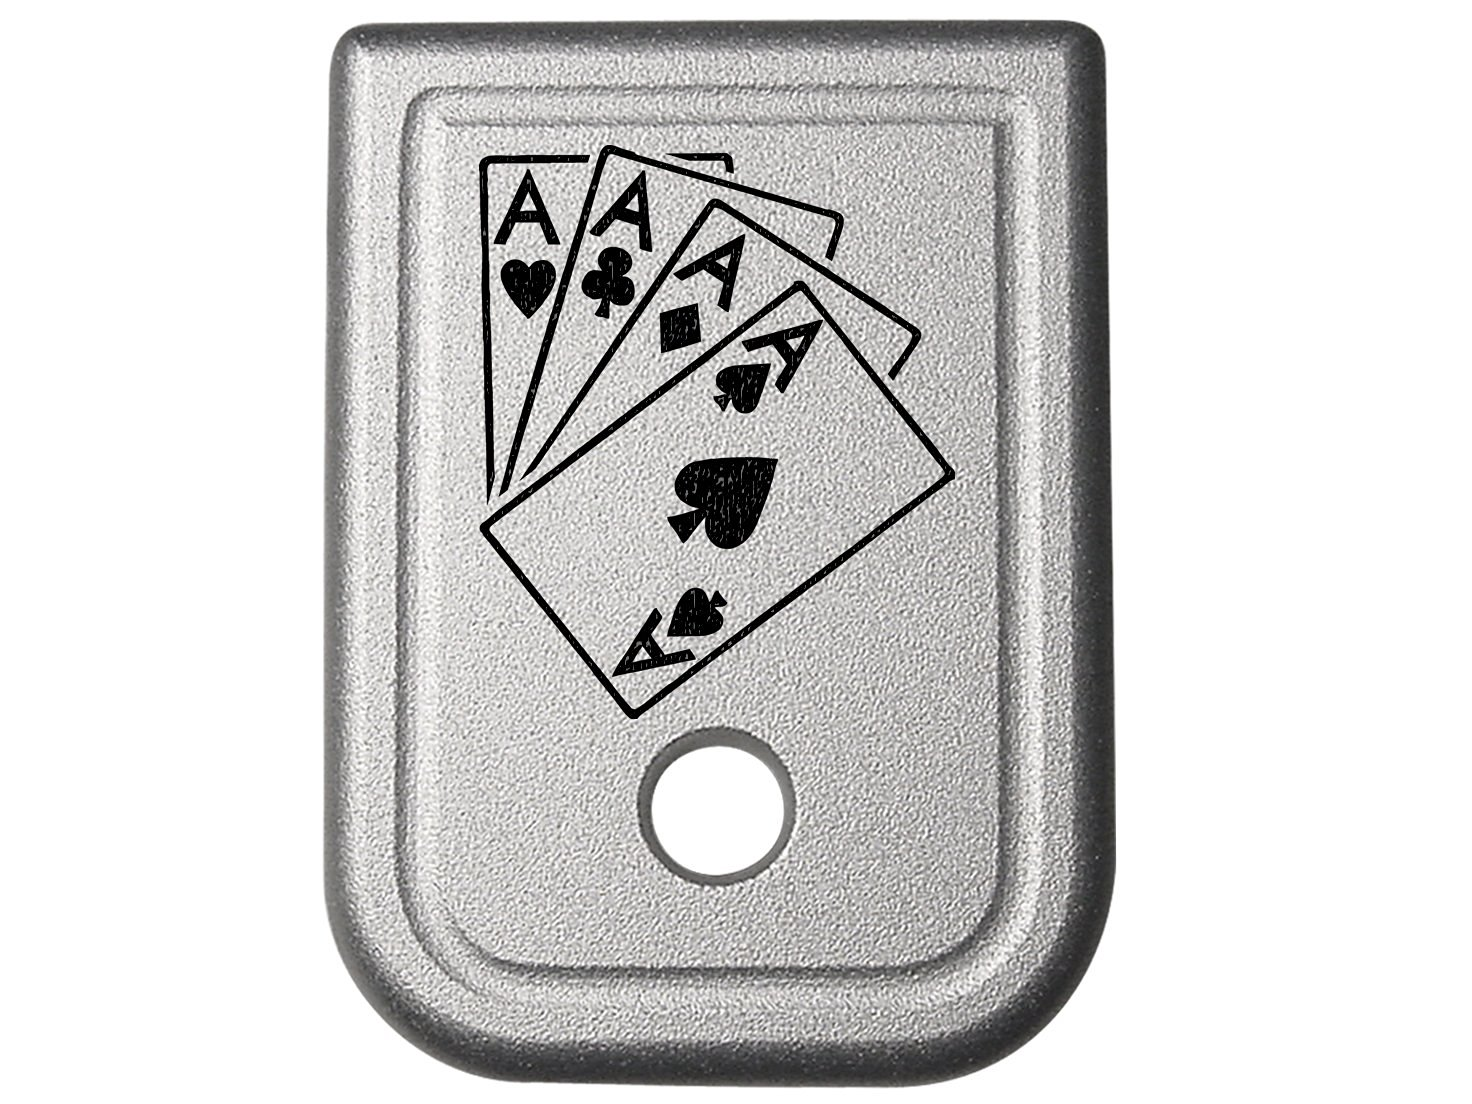 Playing Cards 4 Aces Silver Floor Base Plate for Glock Gen 1-4 G20 G21 G29 G30 G40 G41 10mm .45 Caliber